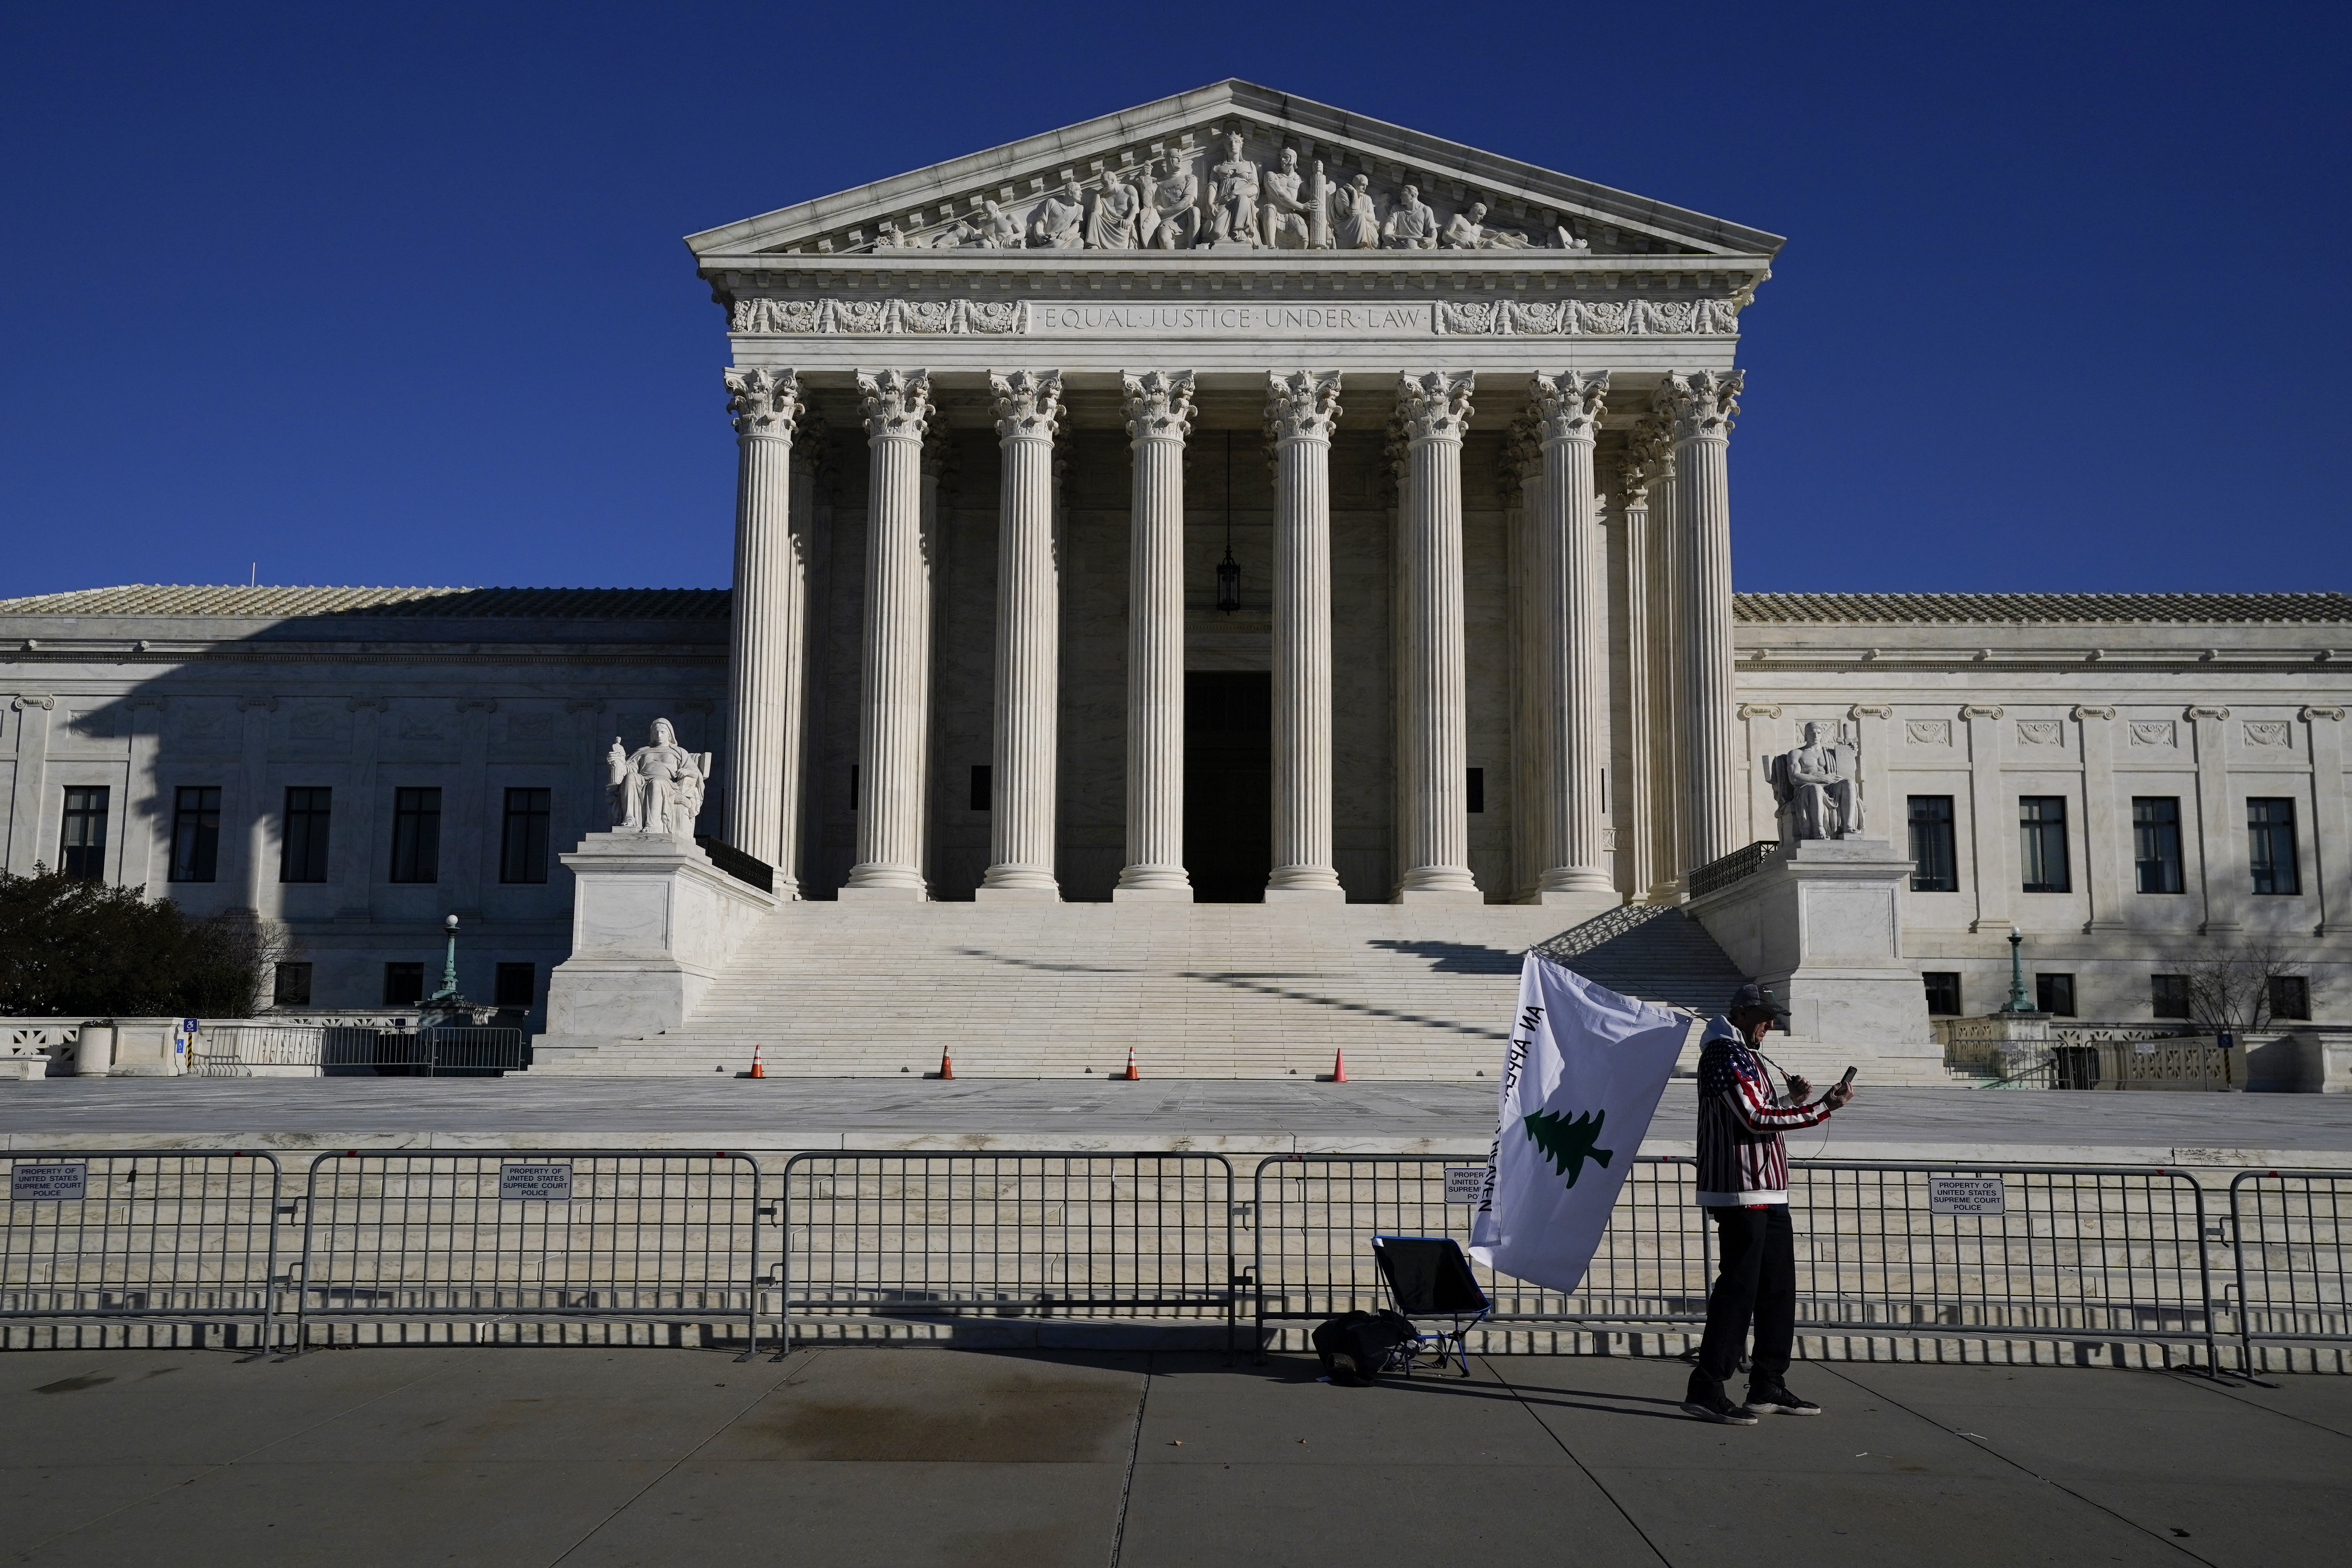 A person walks by newly-placed barricades around the Supreme Court Building, the day after violent protesters loyal to President Donald Trump stormed the U.S. Congress in Washington, Thursday, Jan. 7, 2021.